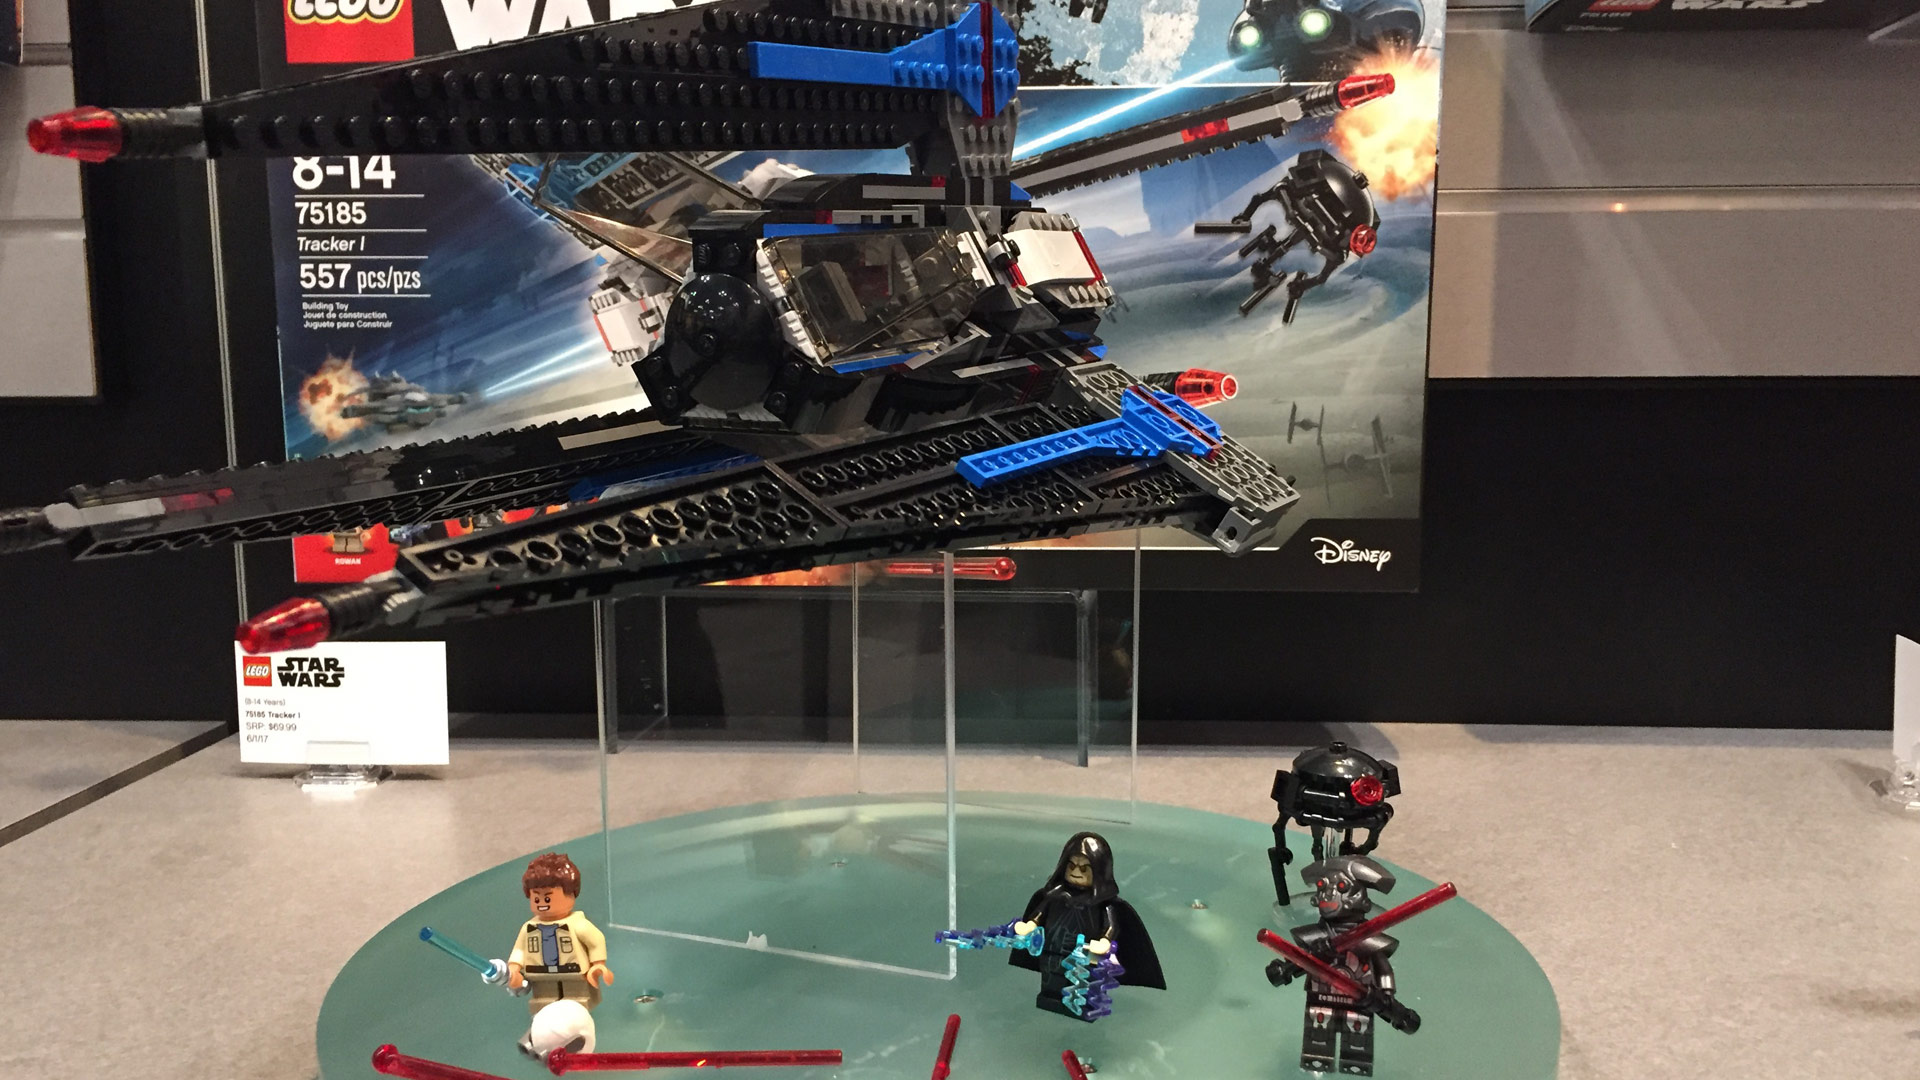 LEGO Star Wars Set 75185 Tracker 1 at Toy Fair 2017